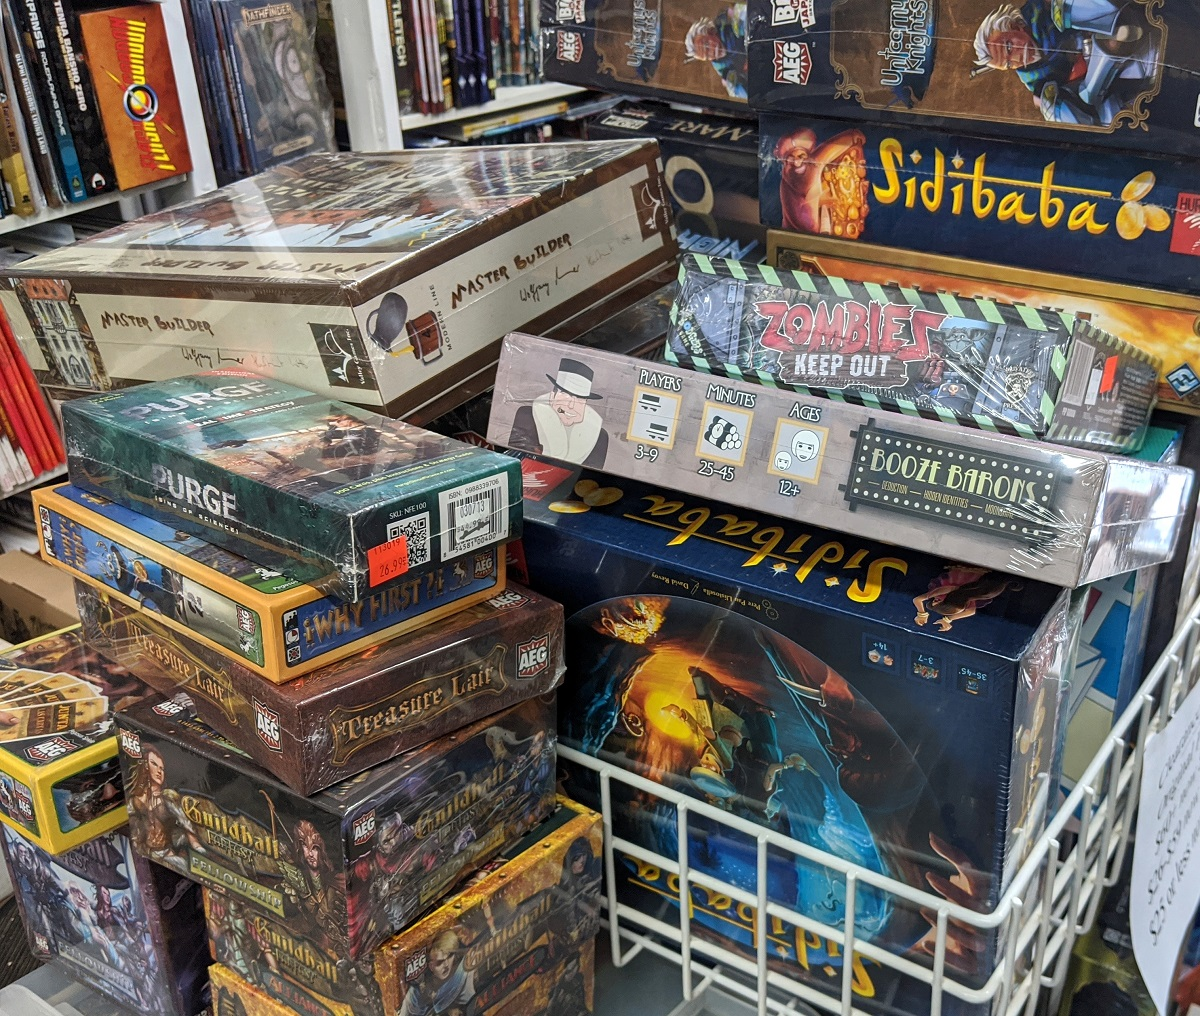 Last chance for clearance games!  Prices down to $15 or less for all clearance #games!  Get them before they go away.  #BoardGames #CardGames #FamilyGames #Salepic.twitter.com/NmE5BWQ81z